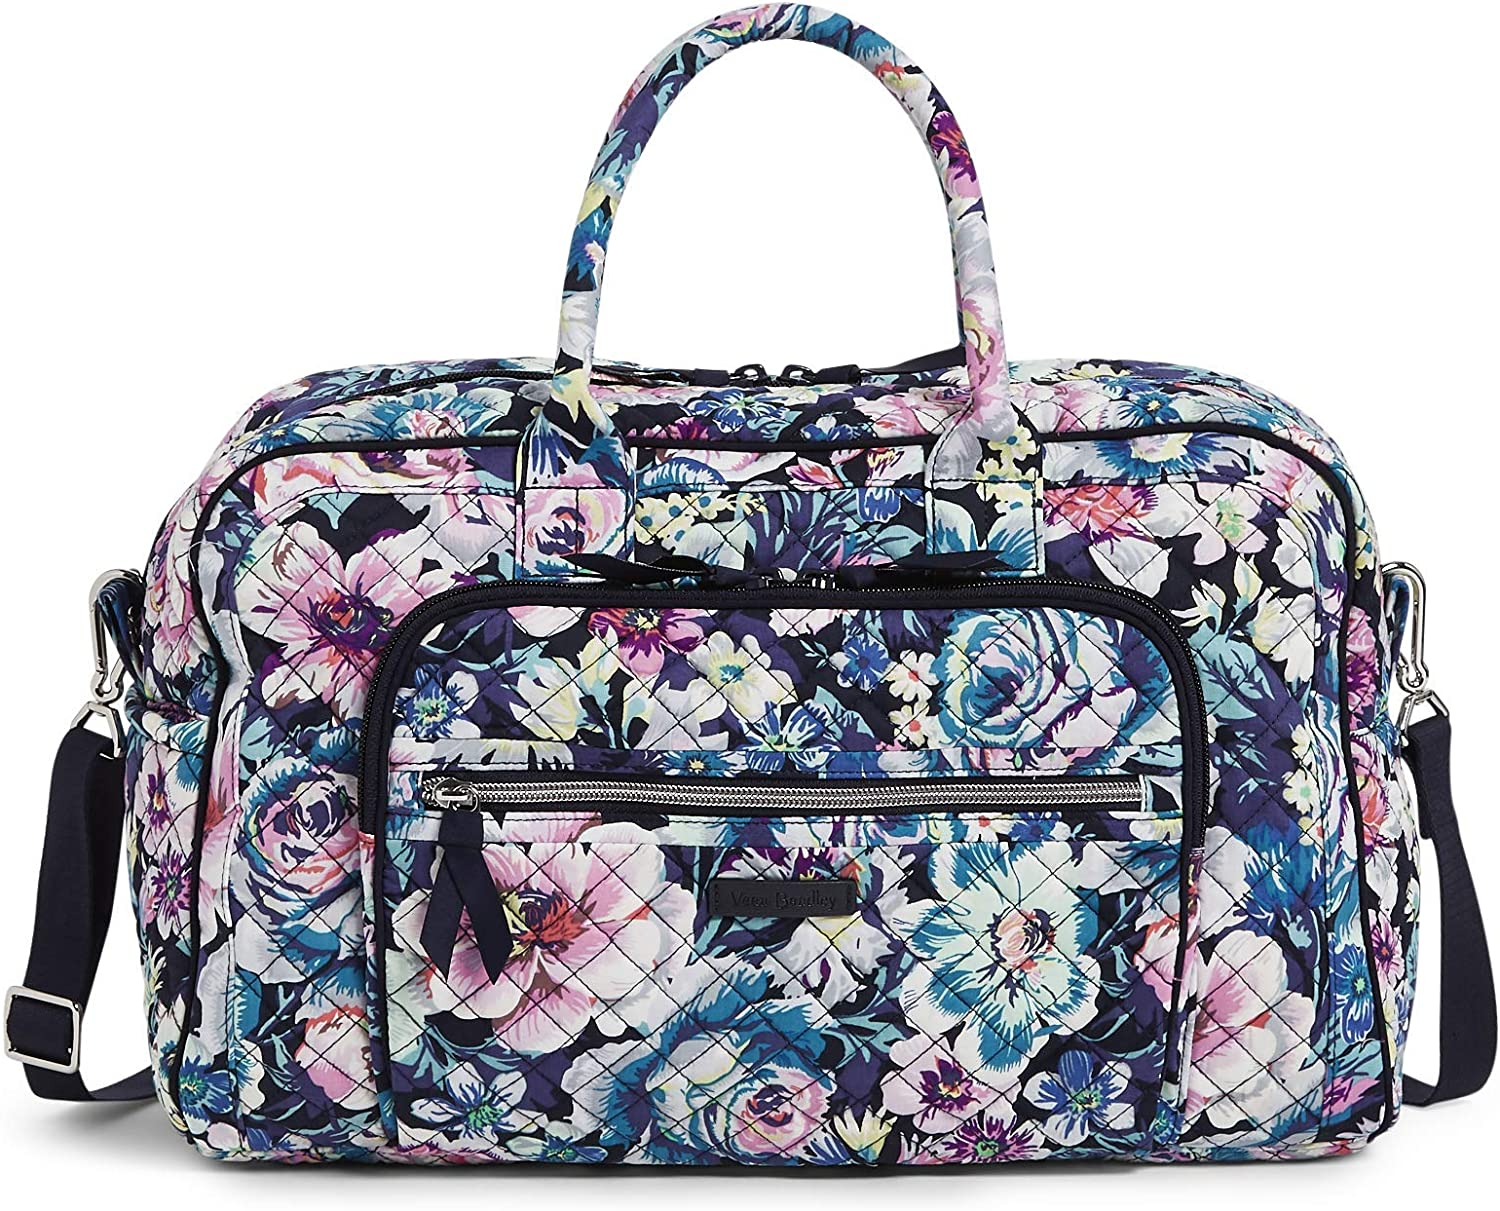 Vera Bradley Women's Signature Cotton Compact Weekender Travel Bag